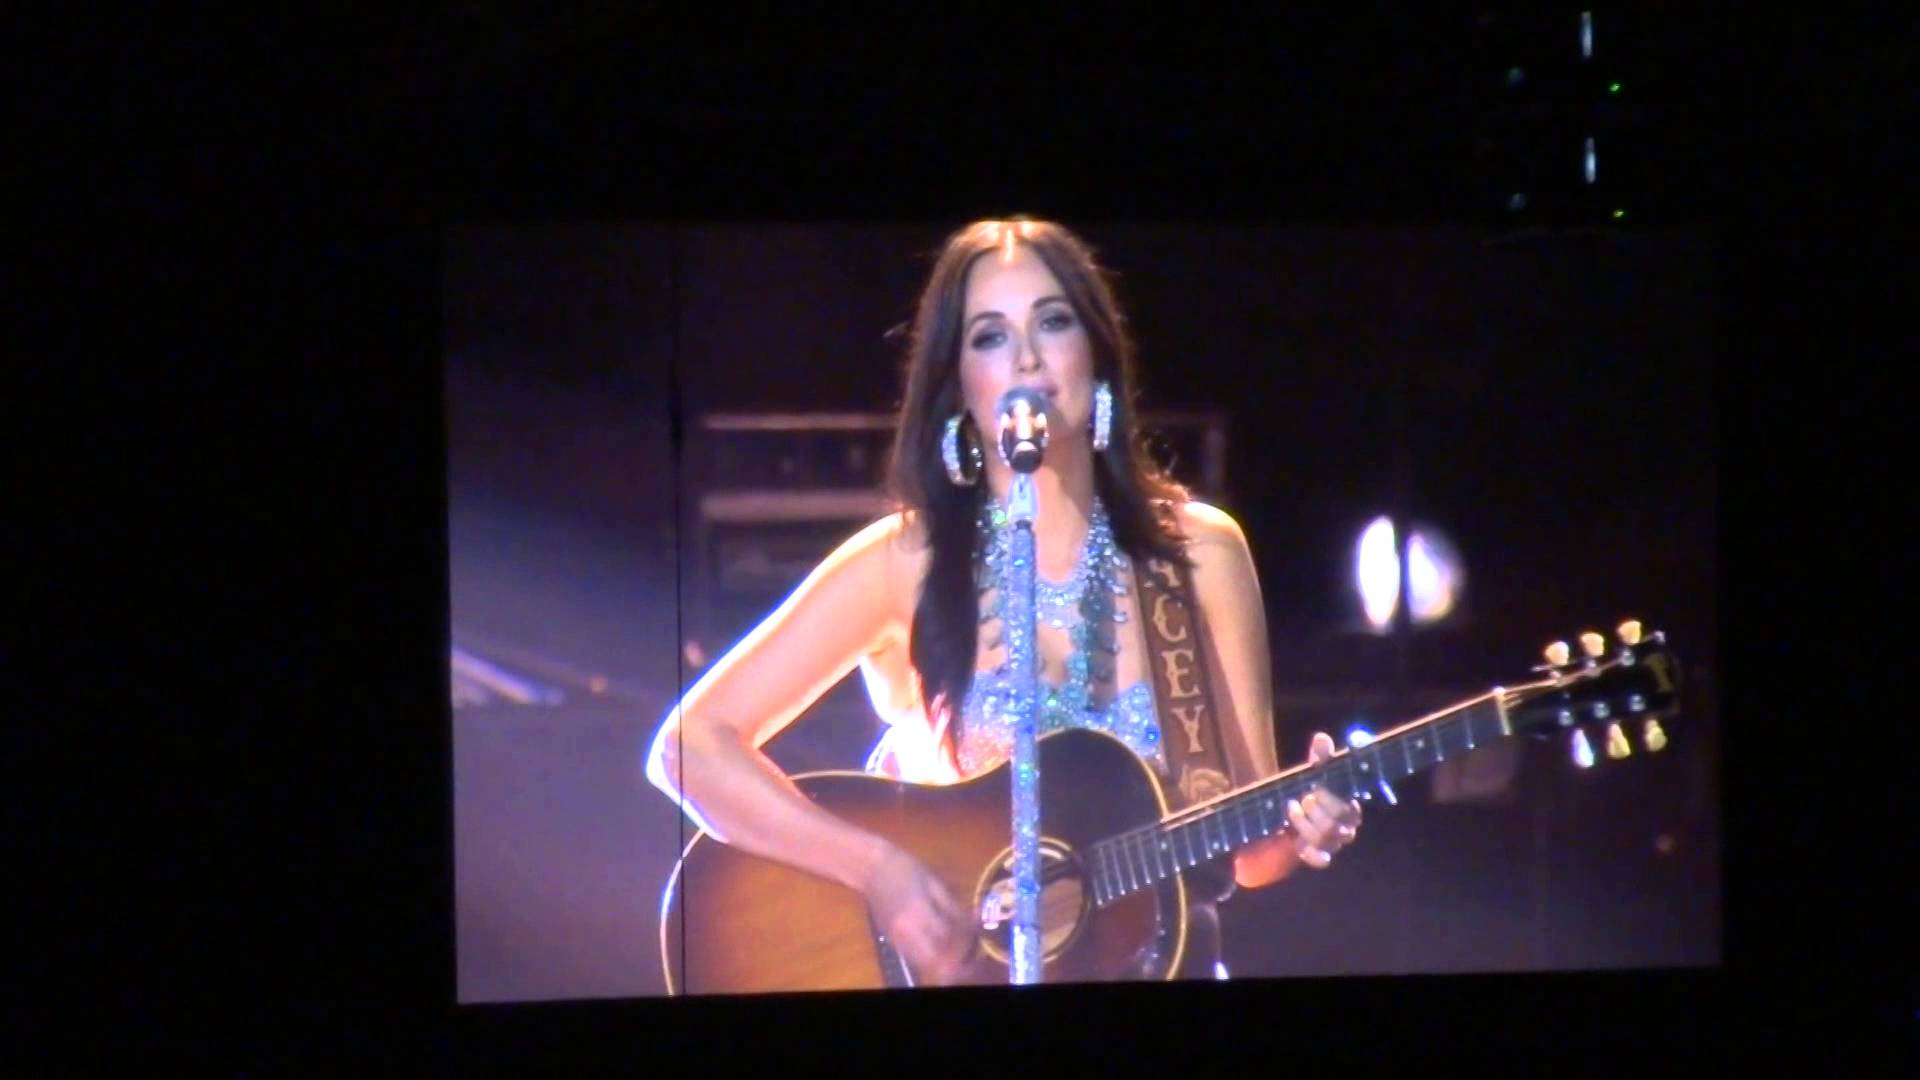 Kacey Musgraves - Merry go 'round, C2C London 2016 - YouTube